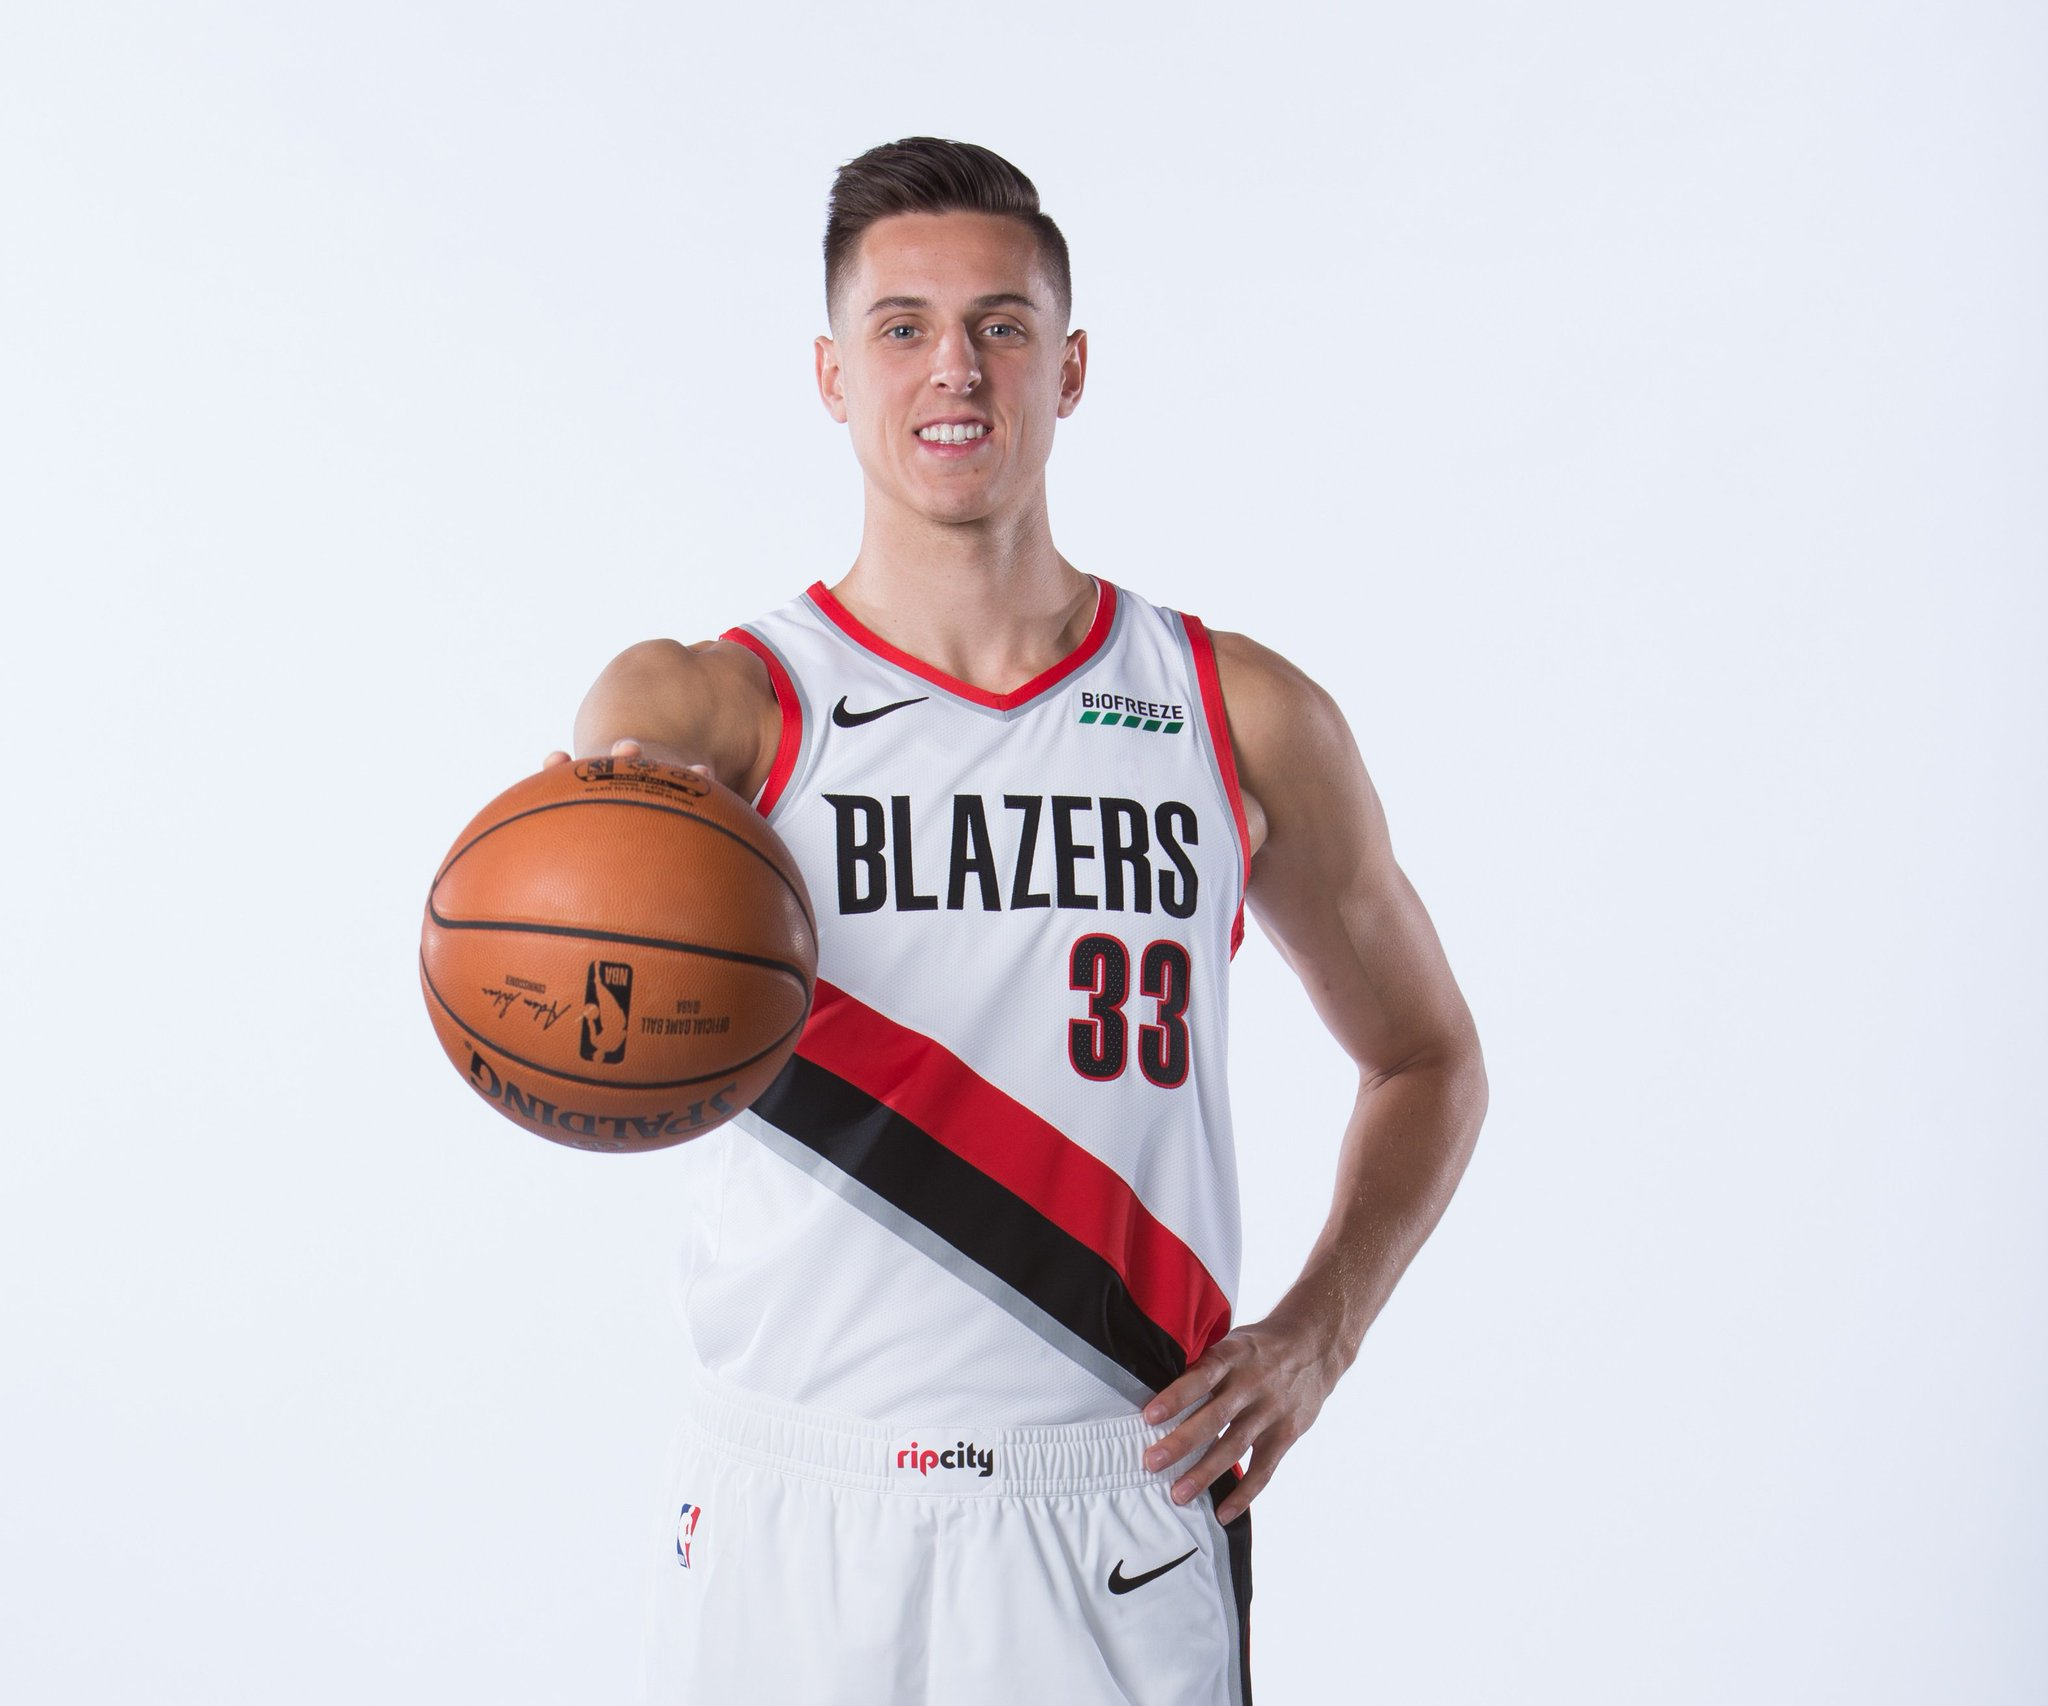 Join us in wishing @zcollins_33 of the @trailblazers a HAPPY 21st BIRTHDAY!   #NBABDAY #RipCity https://t.co/CvIkSKdyHJ